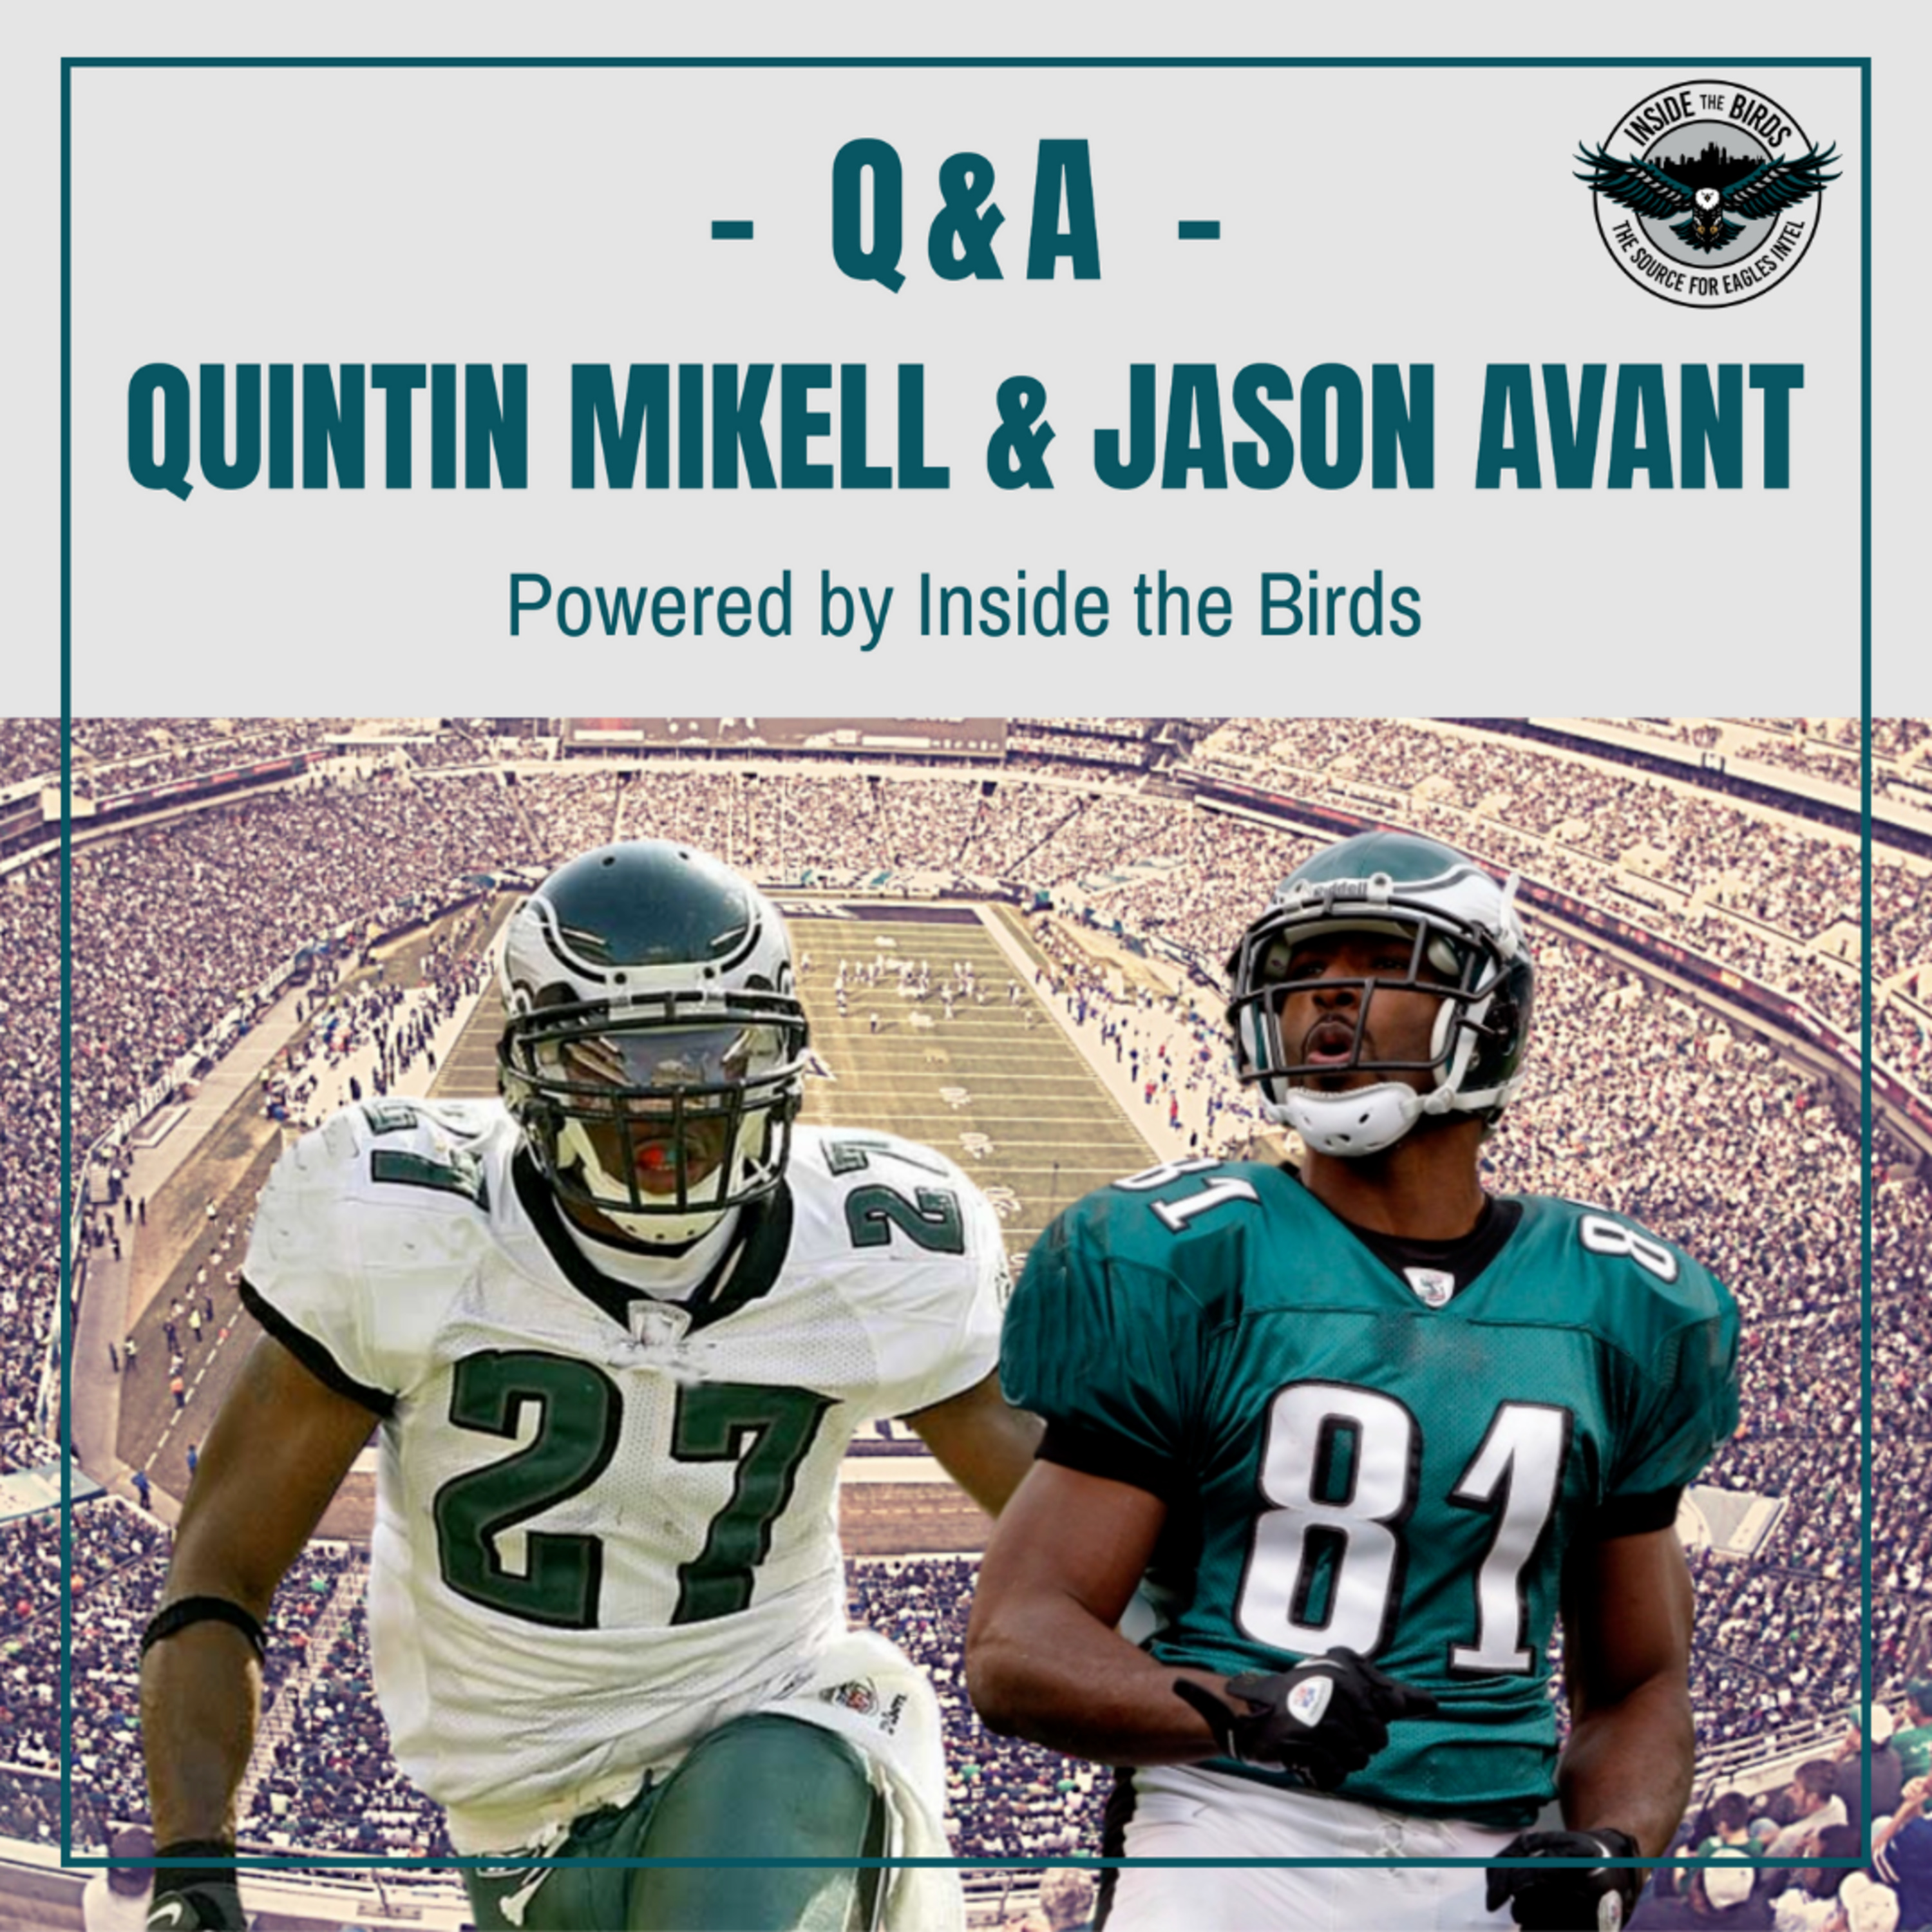 Season Opener Memories | The Lurie BBQ | Week 1 Predictions I Q&A With Quintin Mikell, Jason Avant